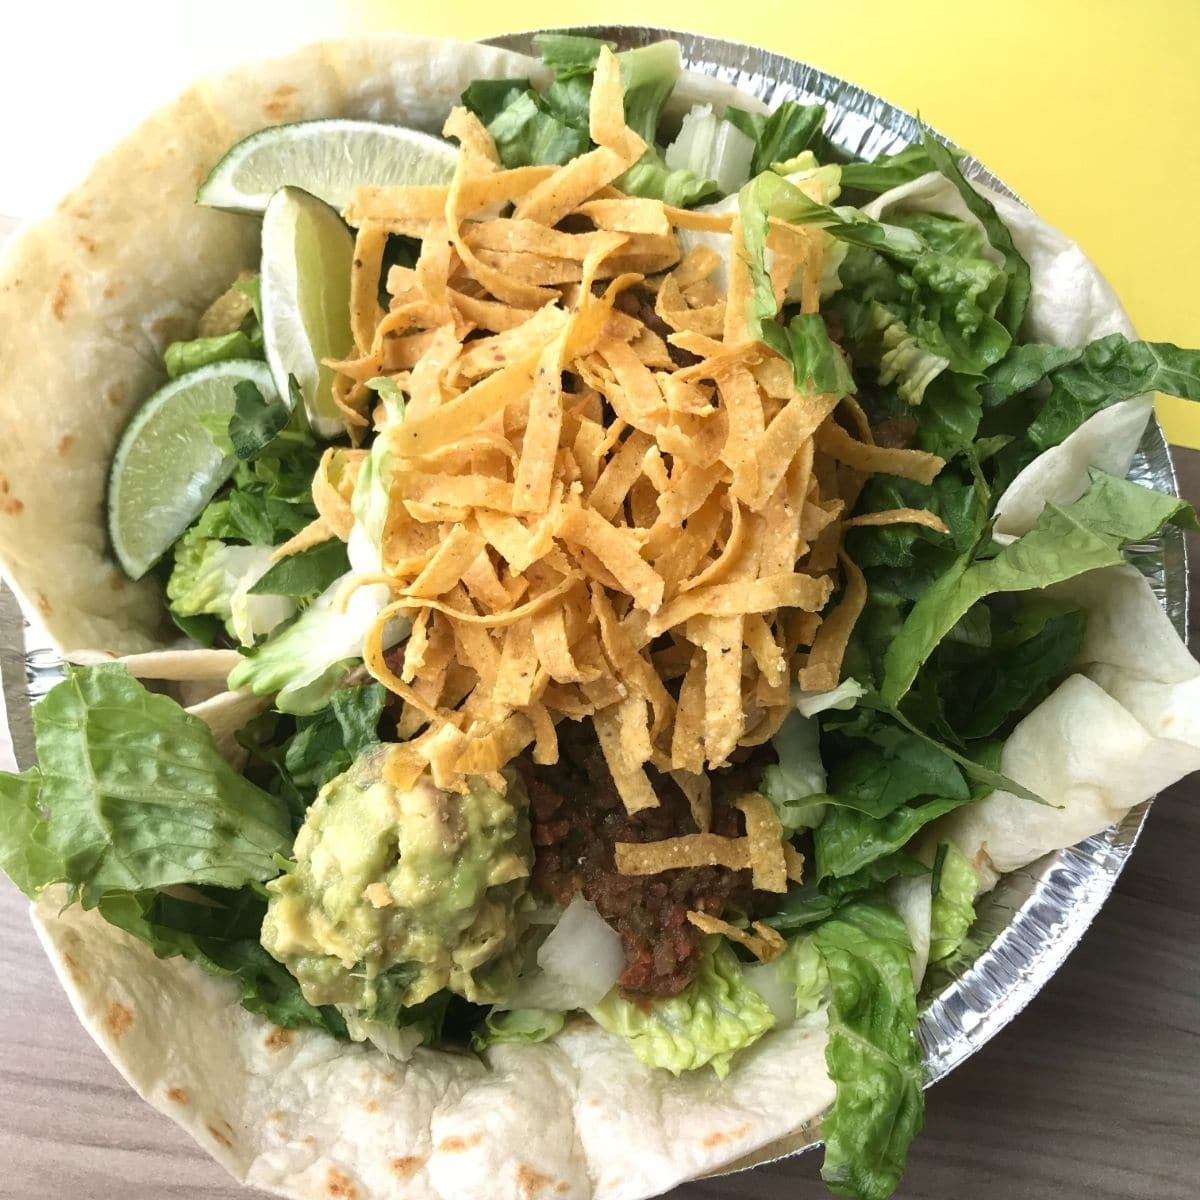 costa vida's veggie salad with a tortilla, lettuce, guacamole, chip strips, salsa, and limes with a wood and yellow background